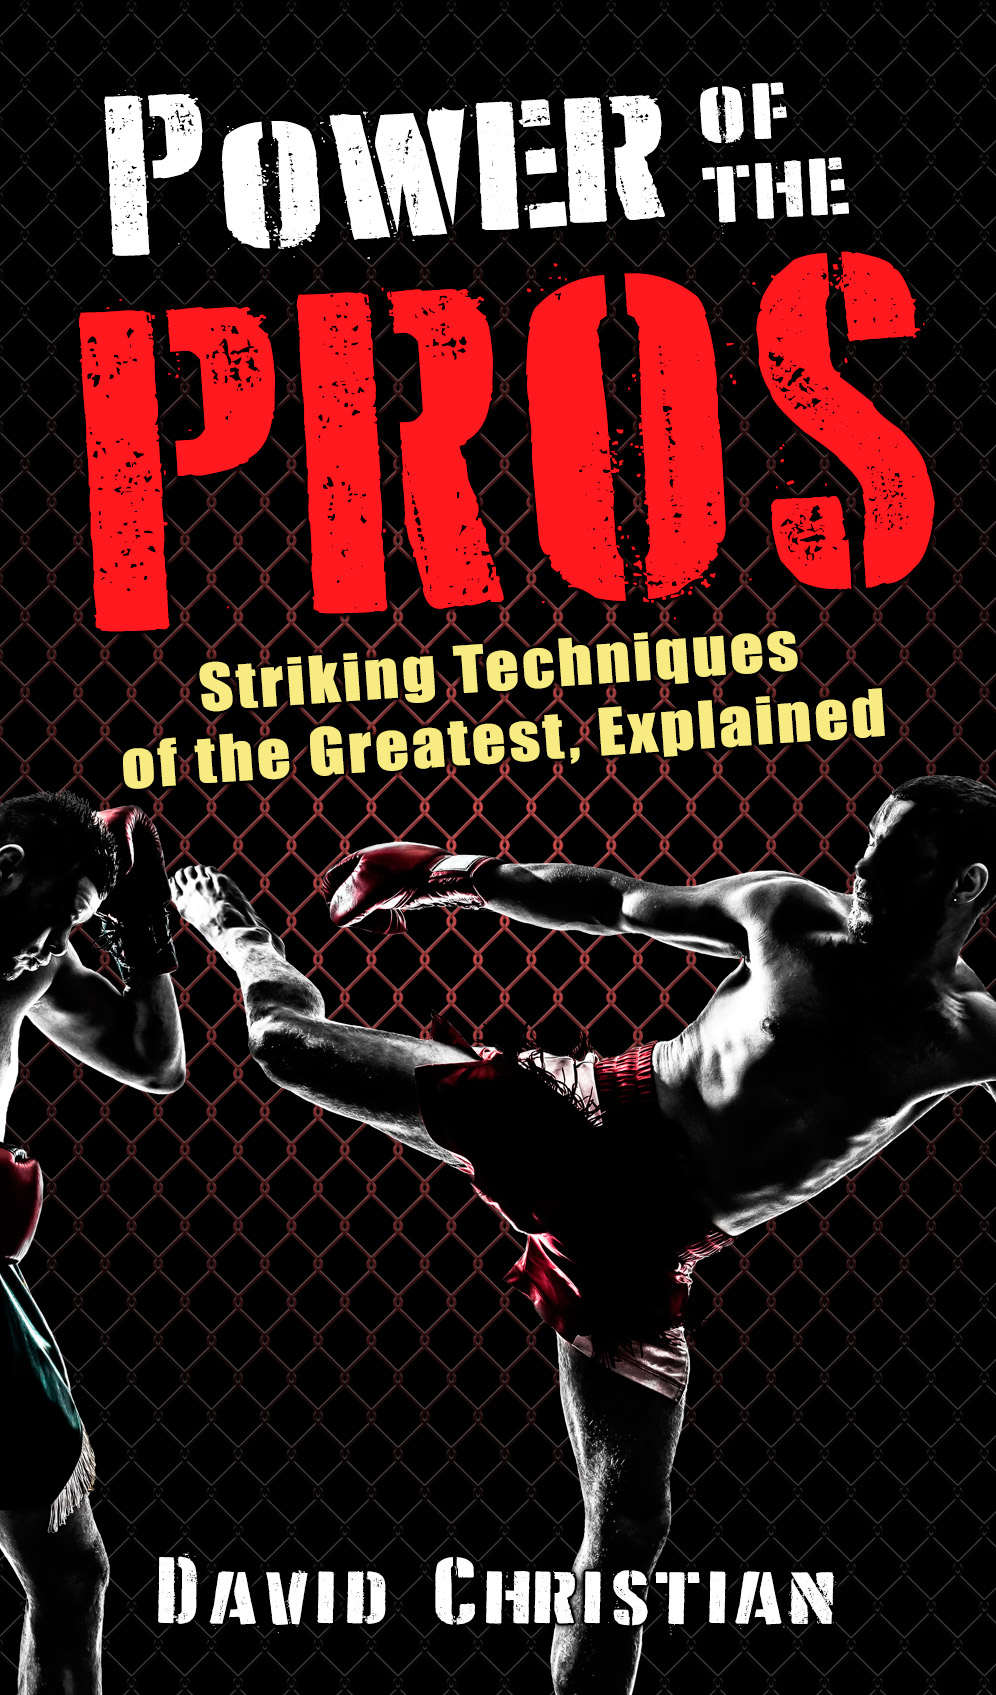 PowerOfThePros_Book_Cover